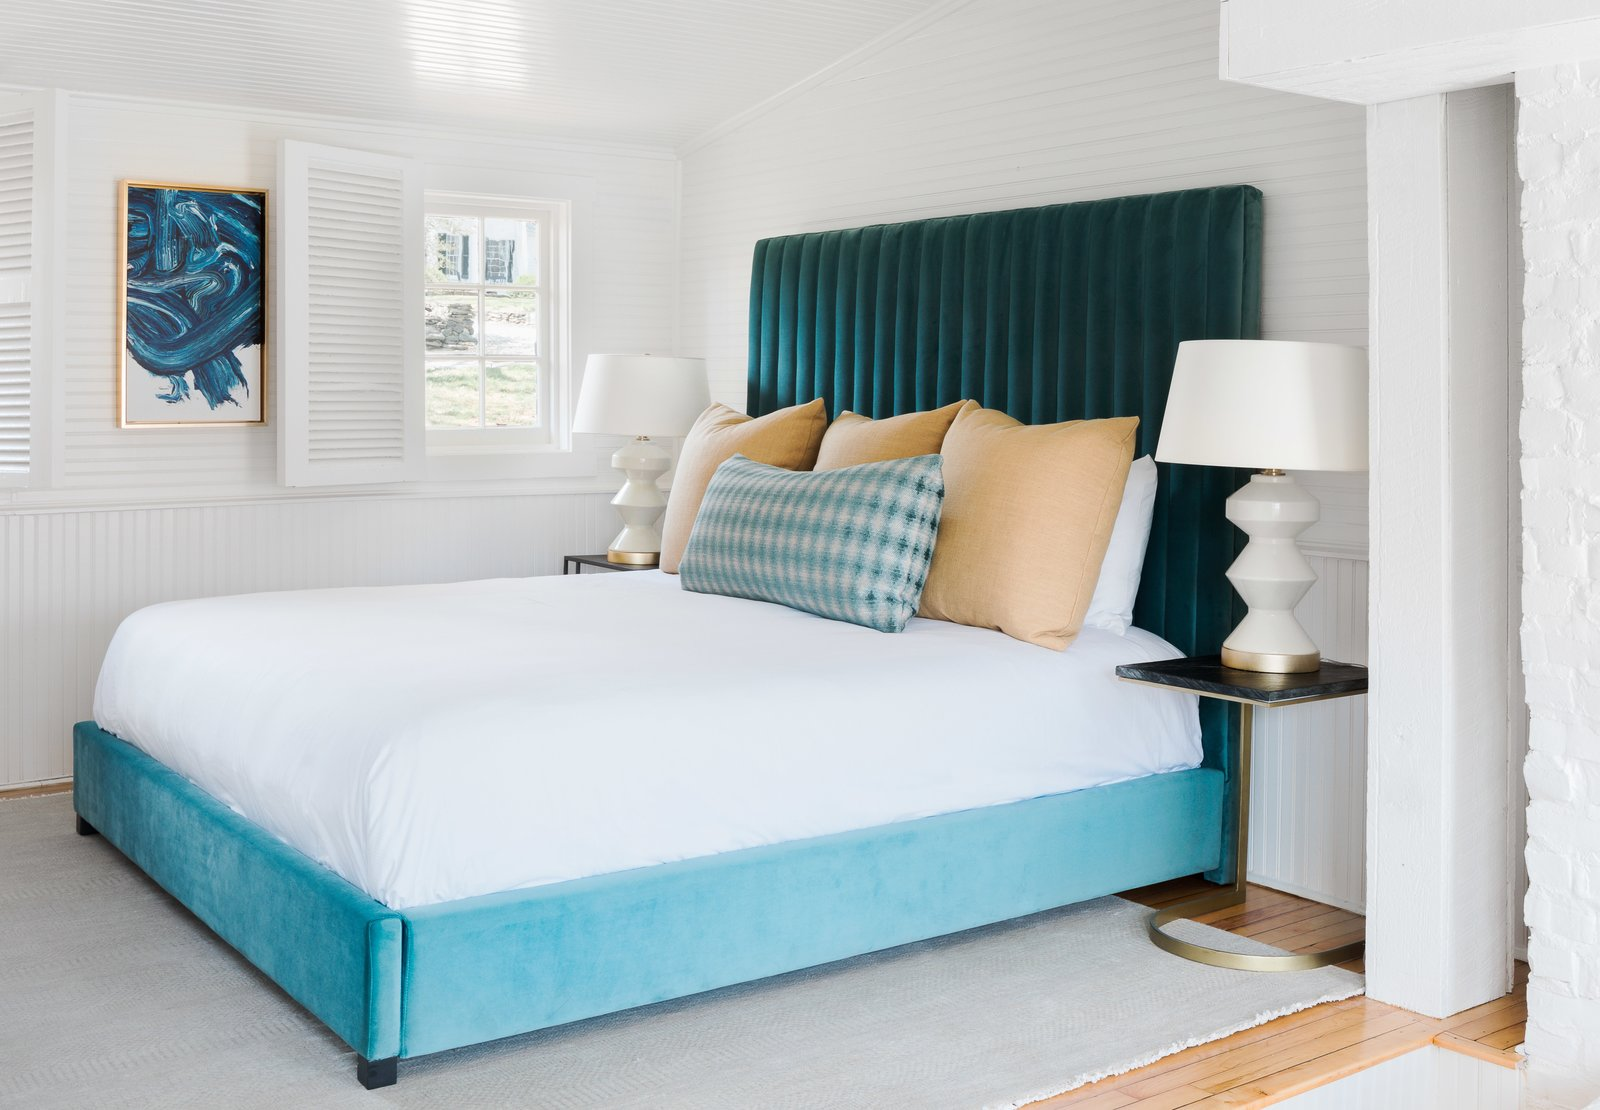 Bedroom, Bed, Night Stands, Table Lighting, Medium Hardwood Floor, and Rug Floor Guest suites in the livery include cozy living areas and king-size beds that are upholstered in a rich turquoise velvet.  Photo 16 of 17 in An 18th-Century Virginian Hotel Boasts an Elegant New Look